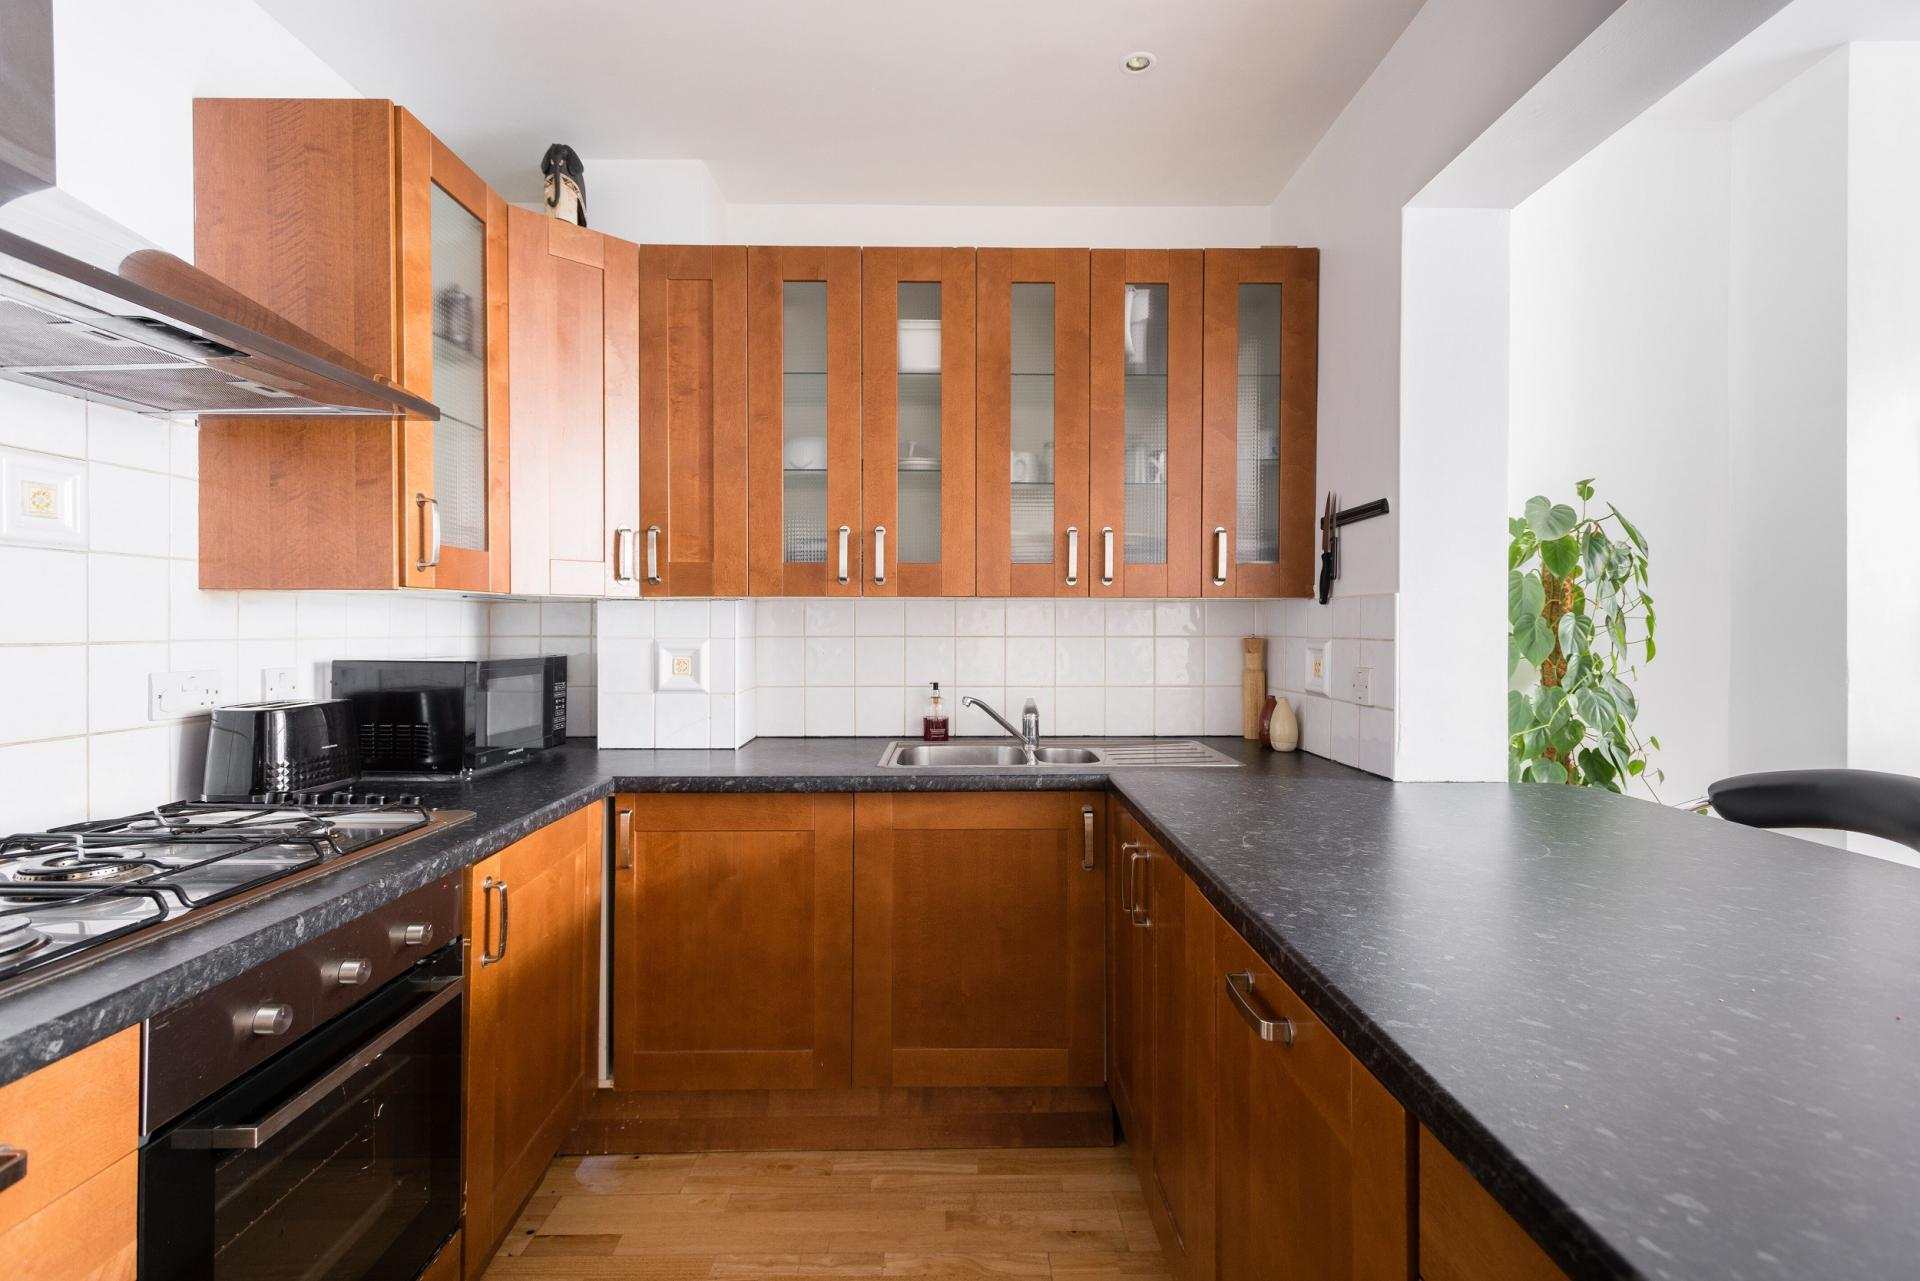 Kitchen at The Bayswater Gardens House, Bayswater, London - Citybase Apartments